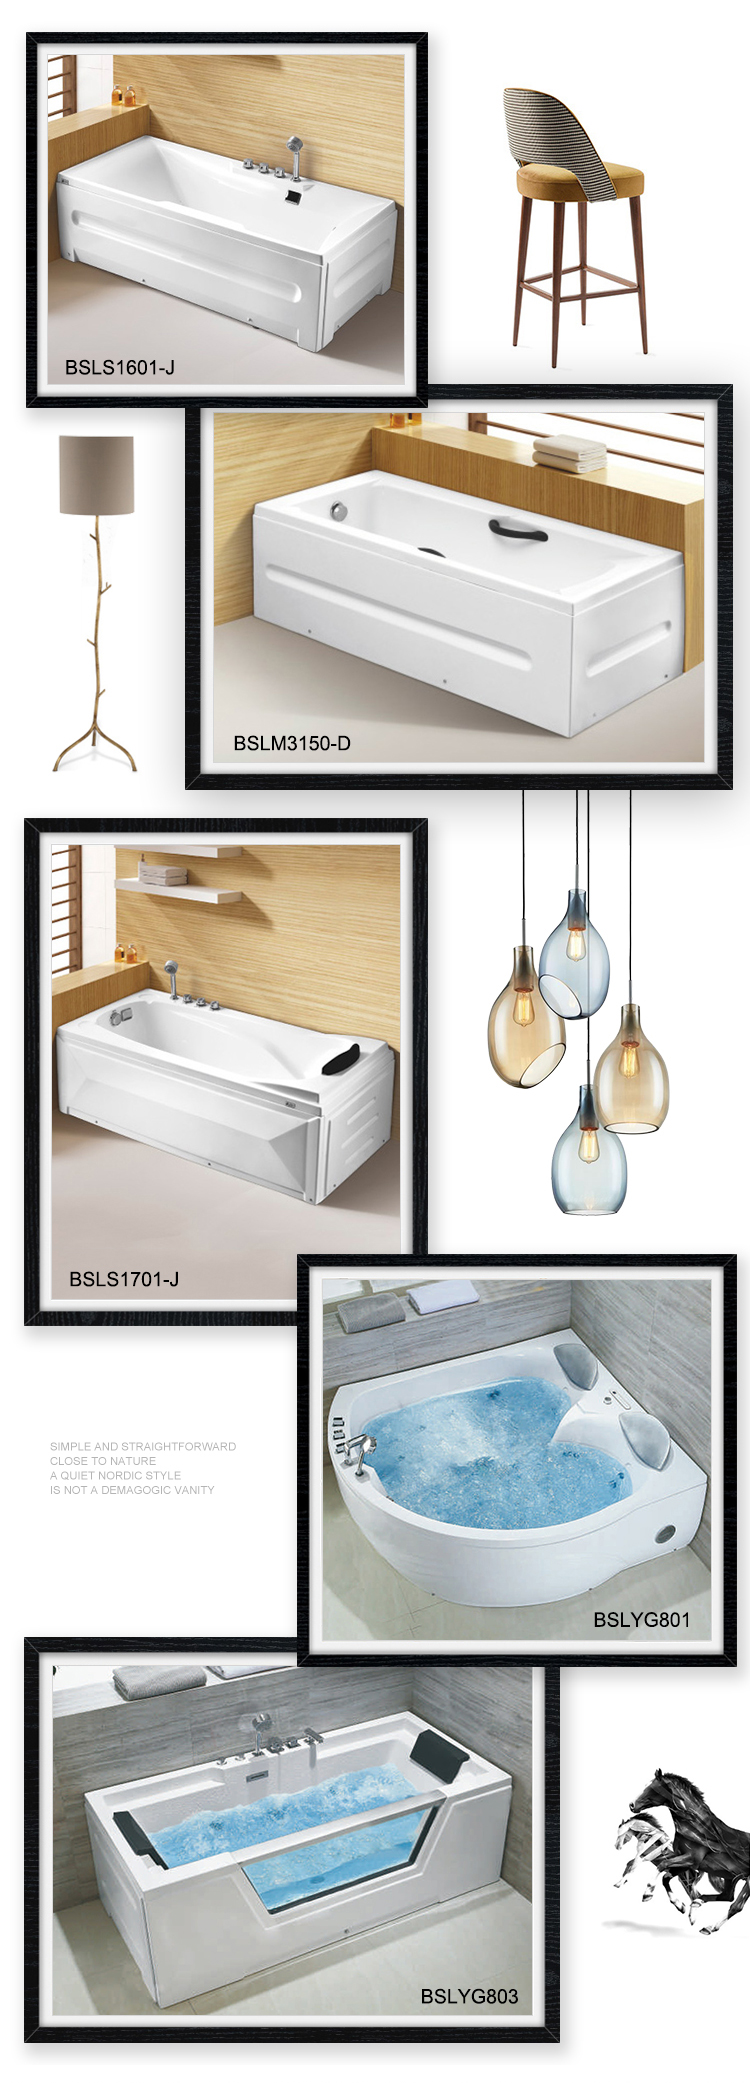 Online Shopping Japanese Jetted Tub Shower Combo New Product ...